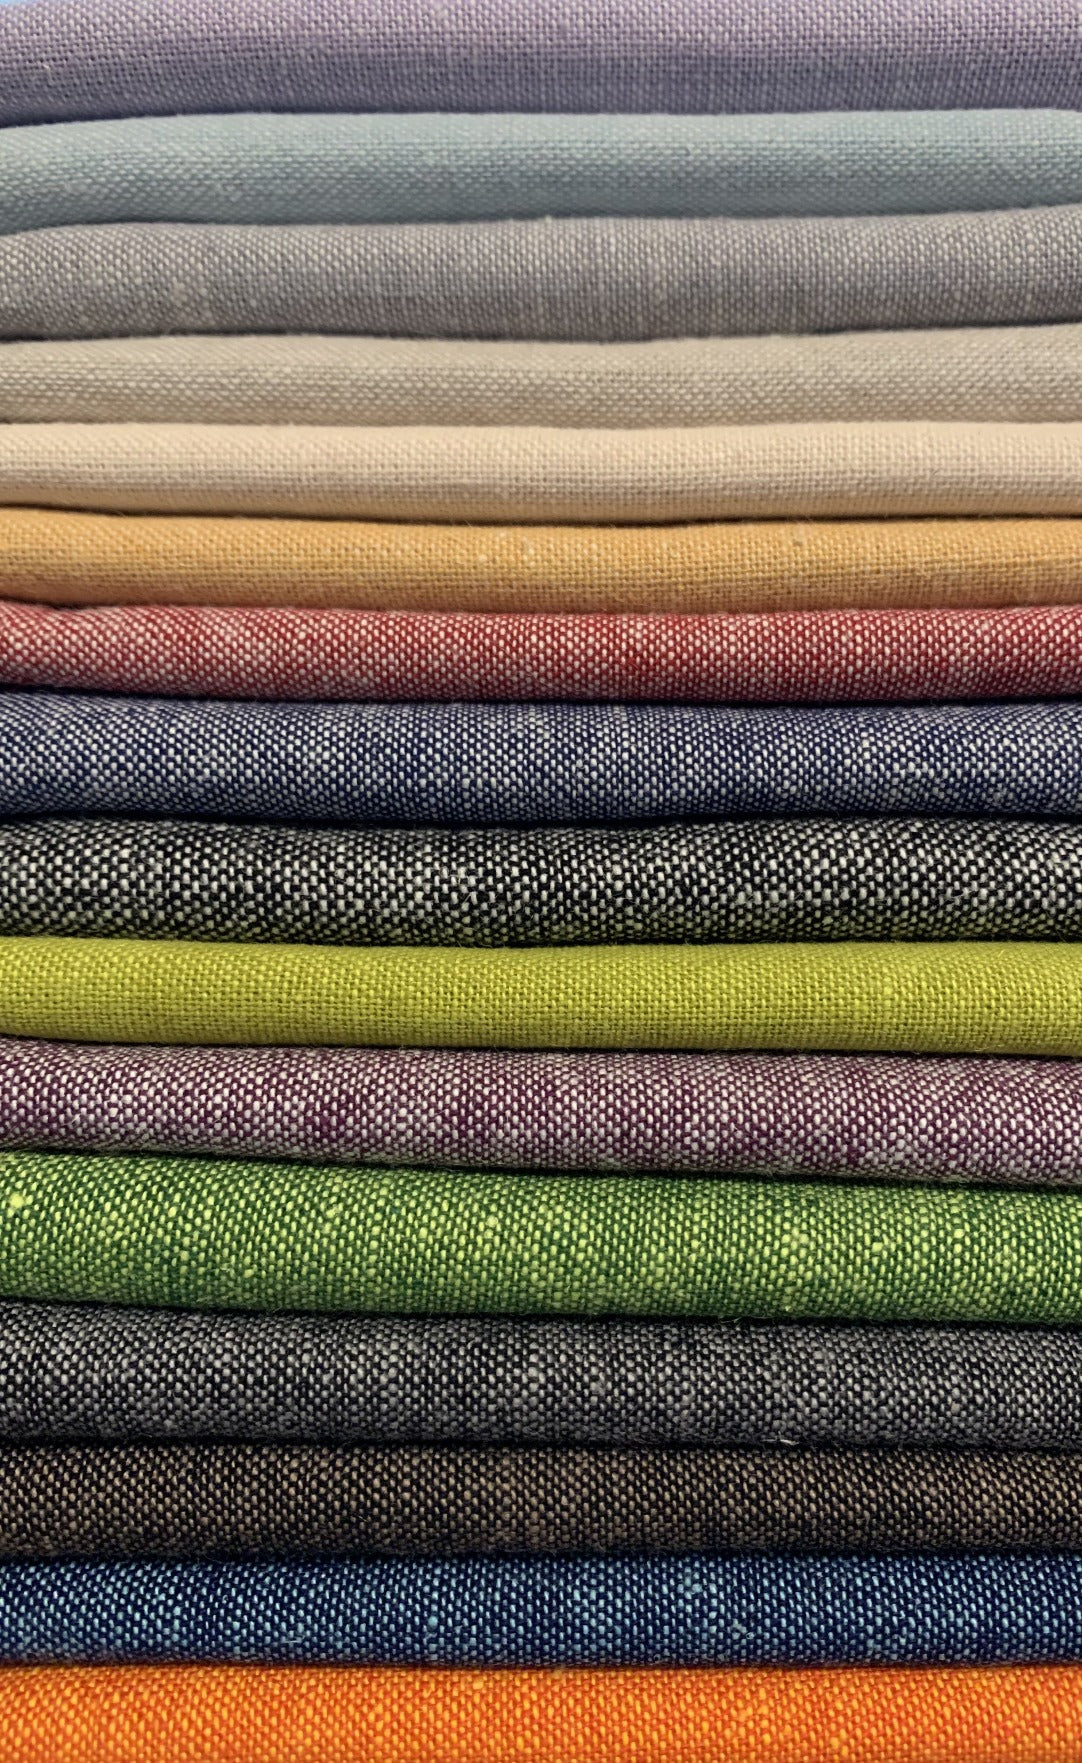 Yarn Dyed Essex Linen Robert Kaufman Fat Quarter Bundle 16 colors